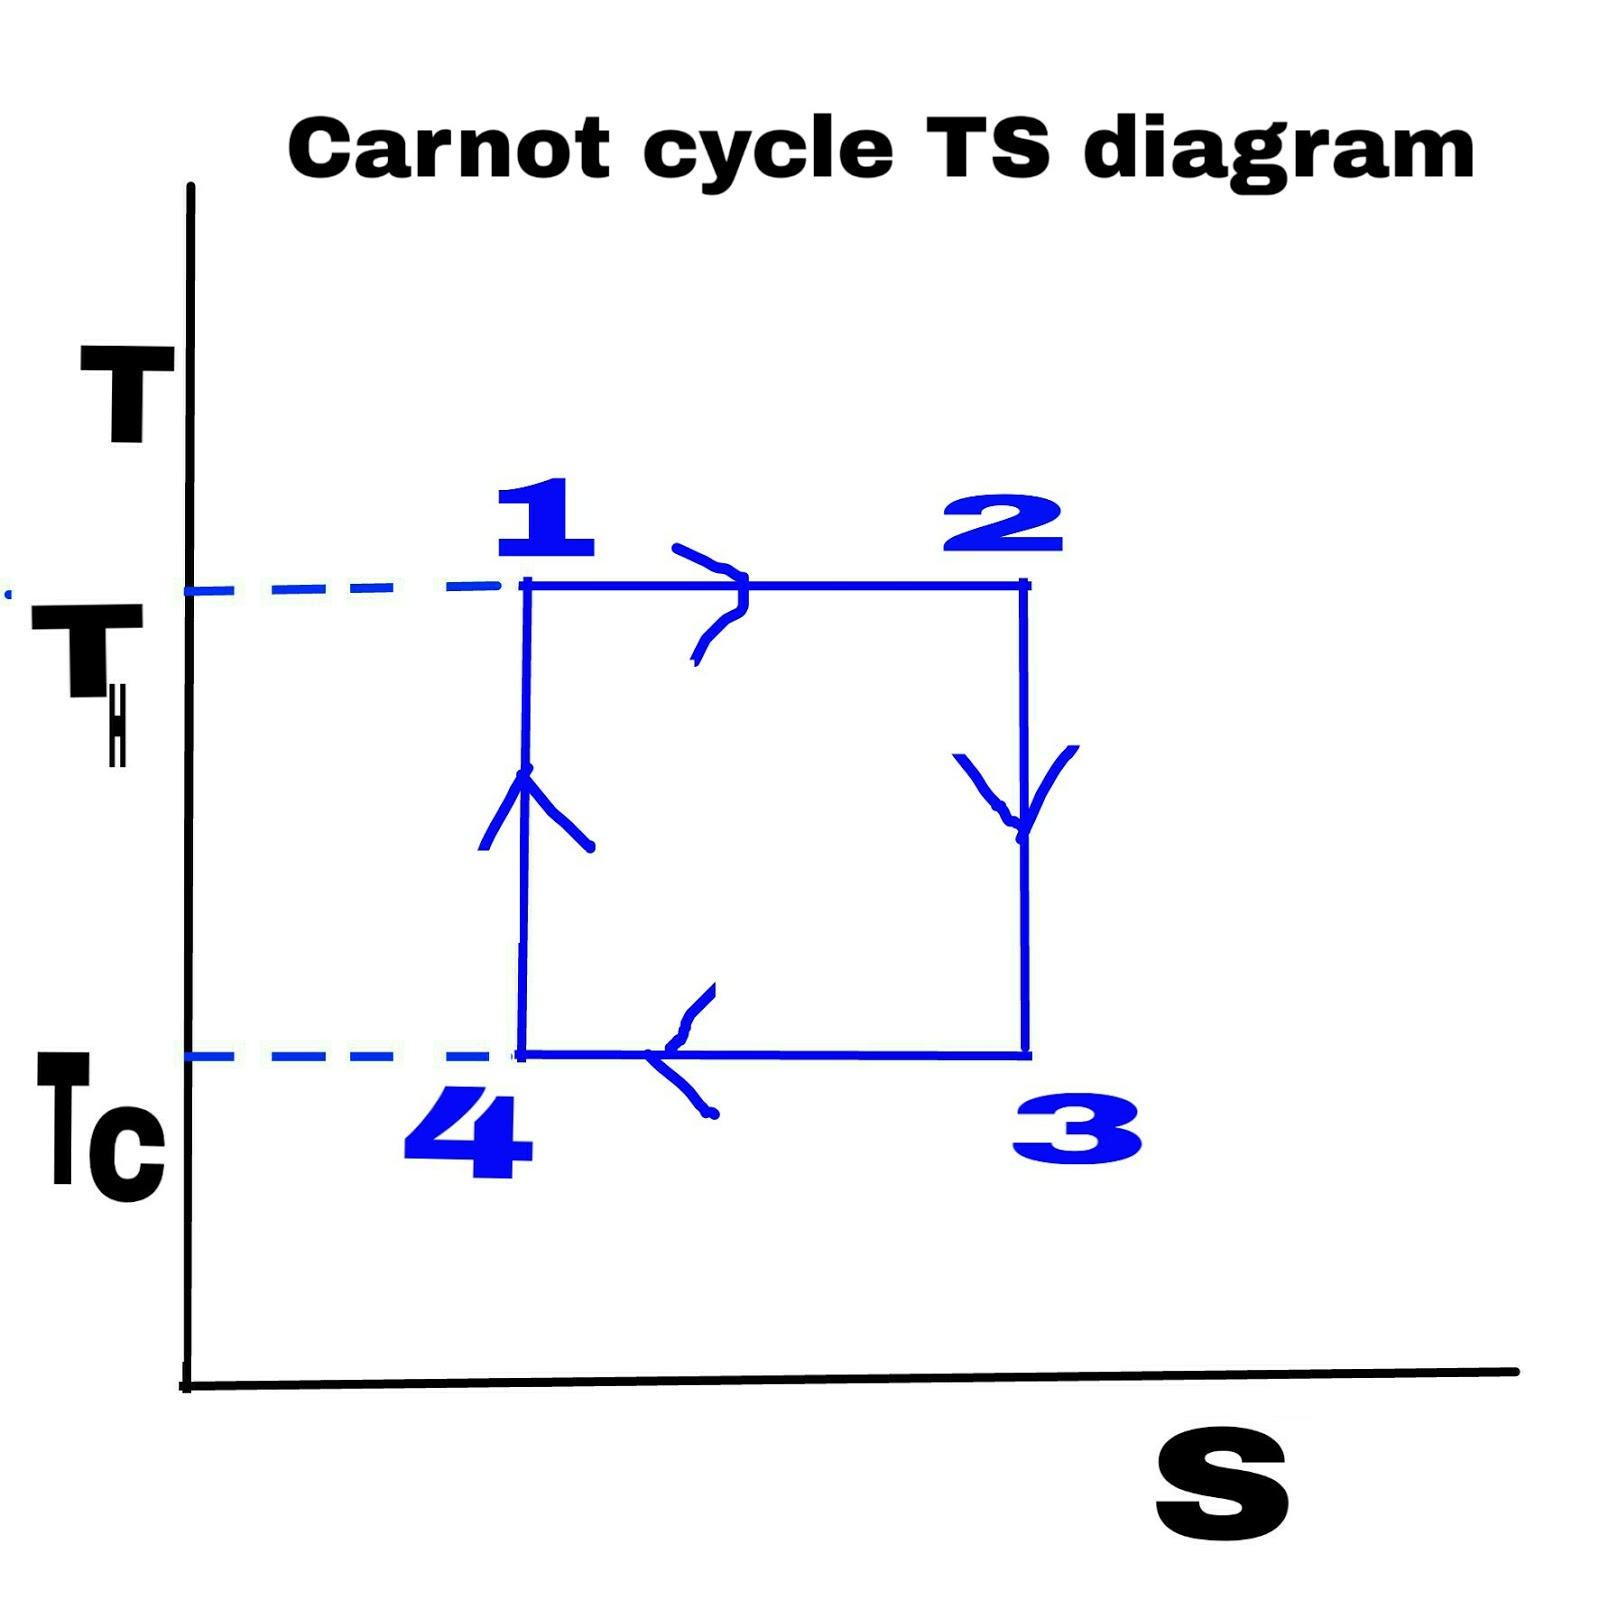 hight resolution of  pv diagram labeled carnot cycle why do we read carnot cycle and use of